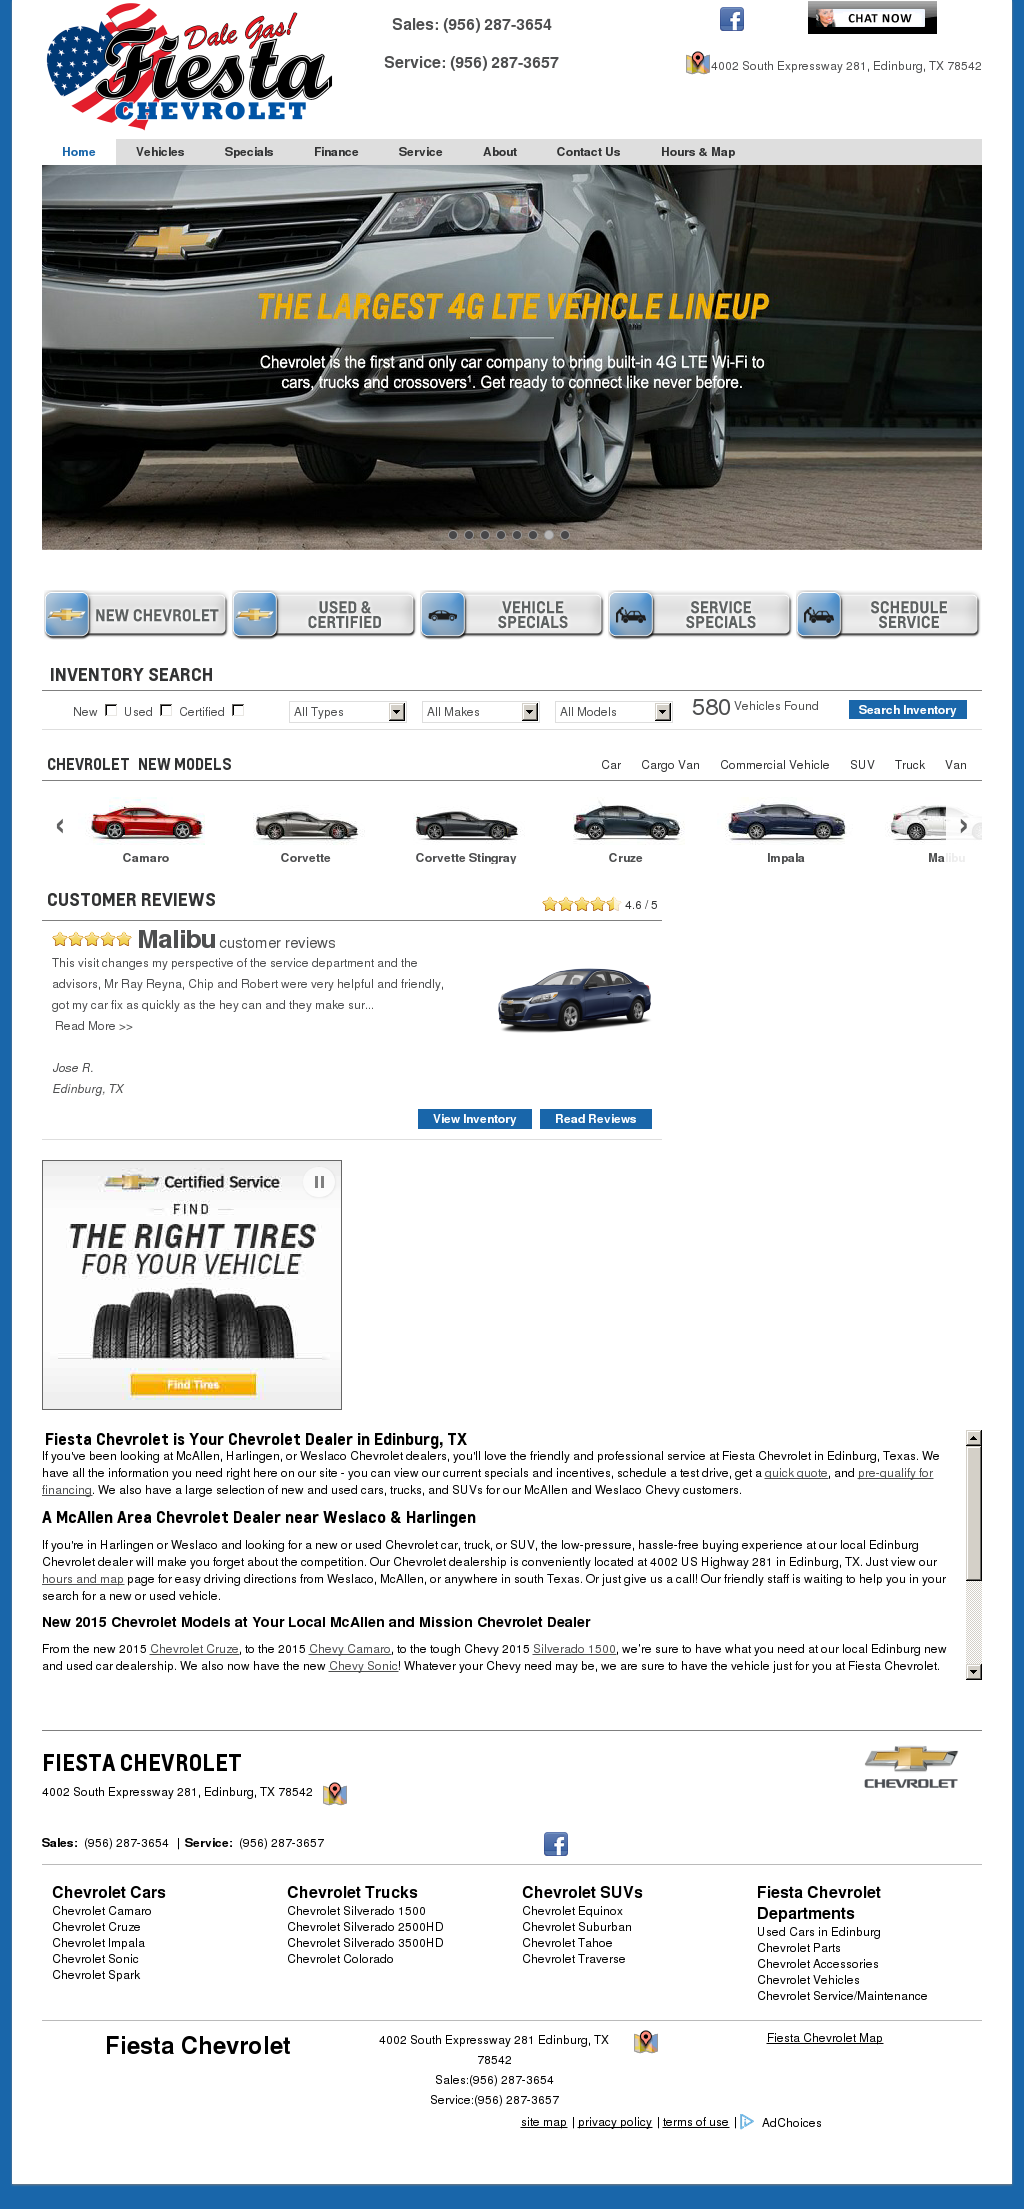 Fiesta Chevrolet Website History